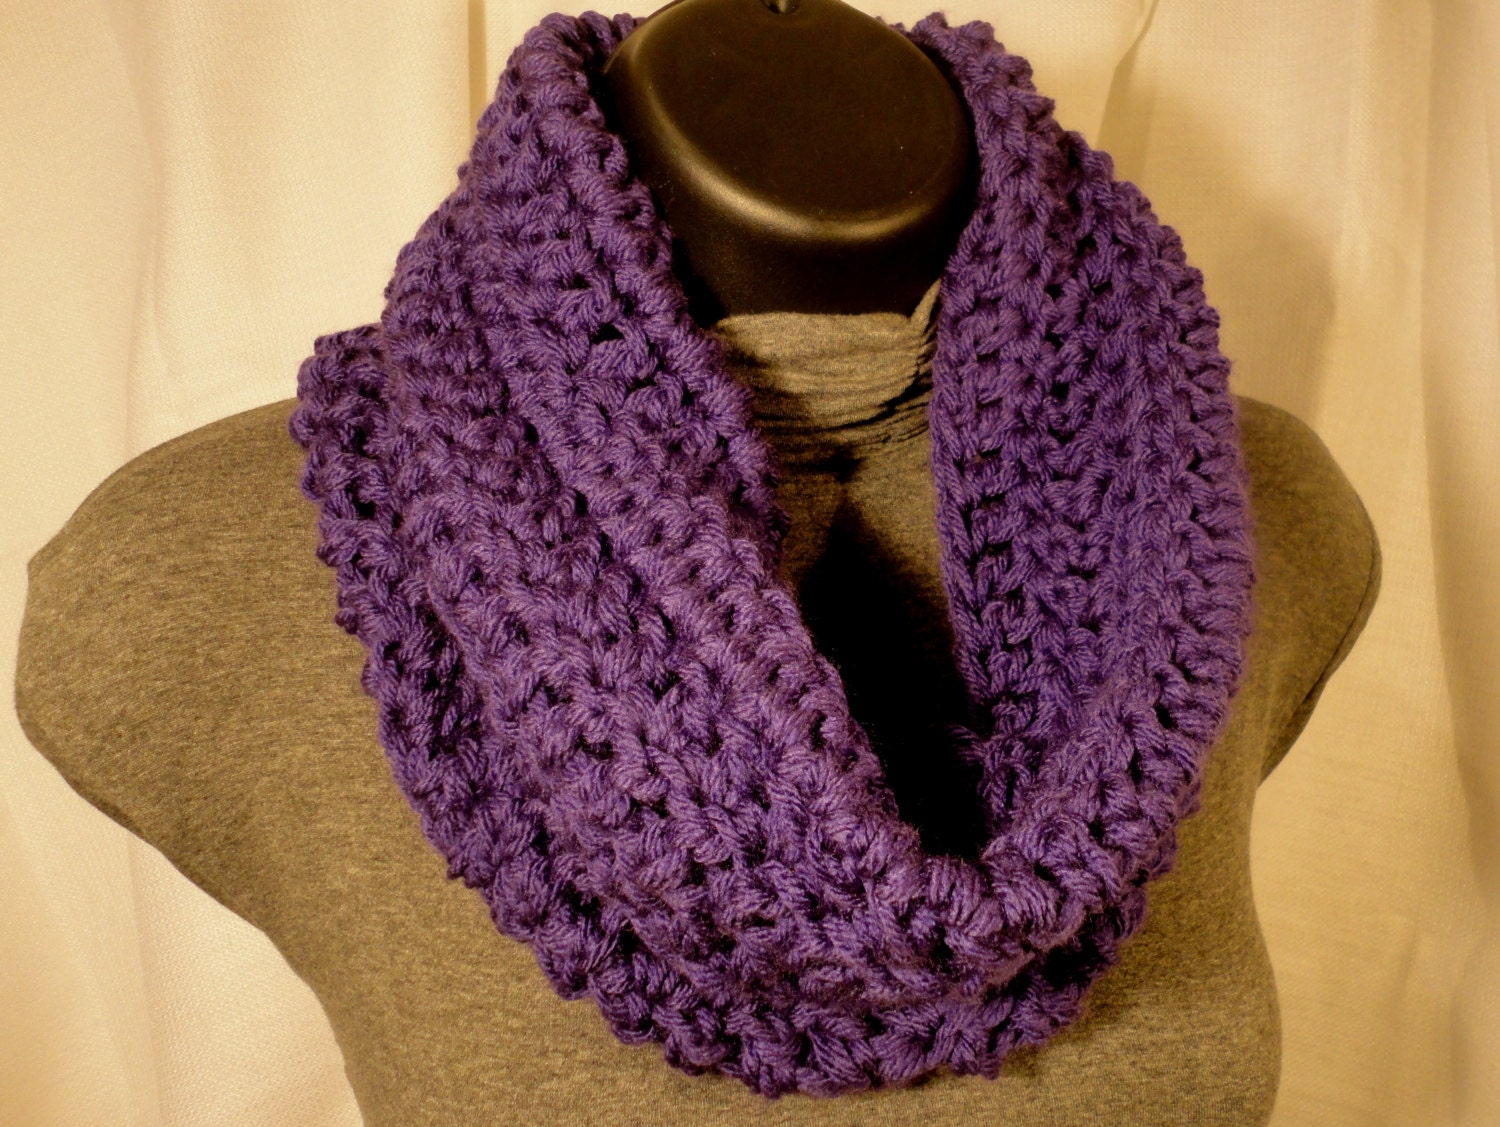 Crocheting Scarves : Crochet Scarf Cowl Neck Warmer Purple Grape by VillaYarnDesigns Cowl ...